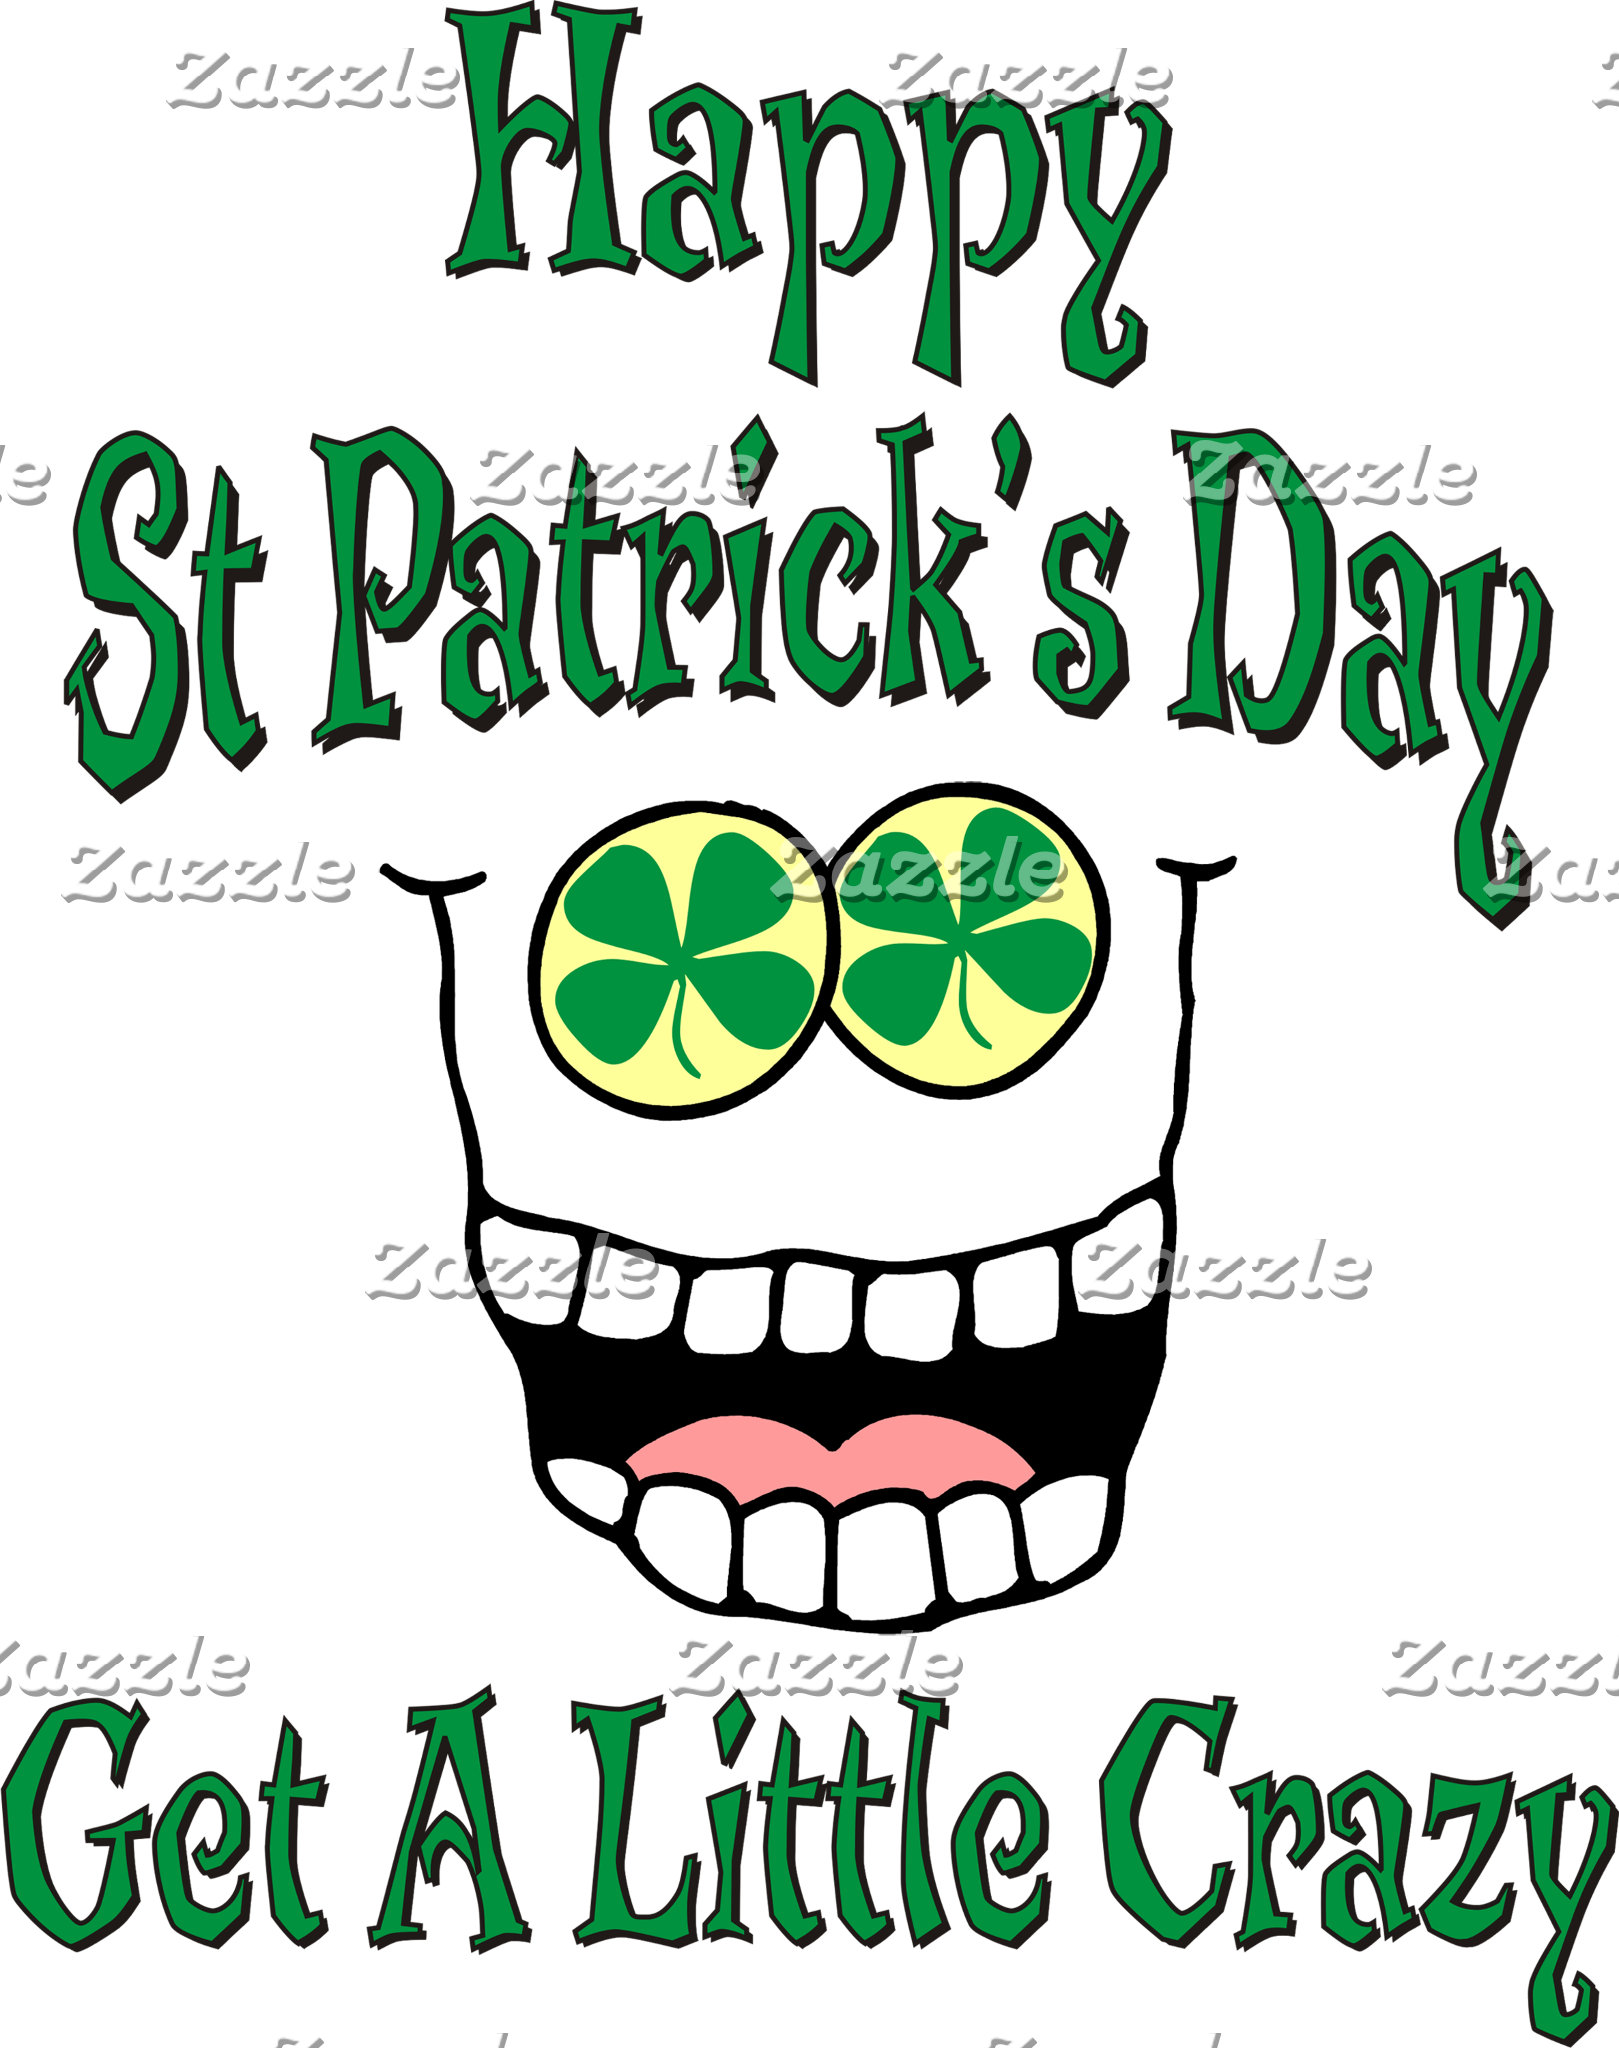 Happy St Patrick's Day Get A Little Crazy T-Shirt